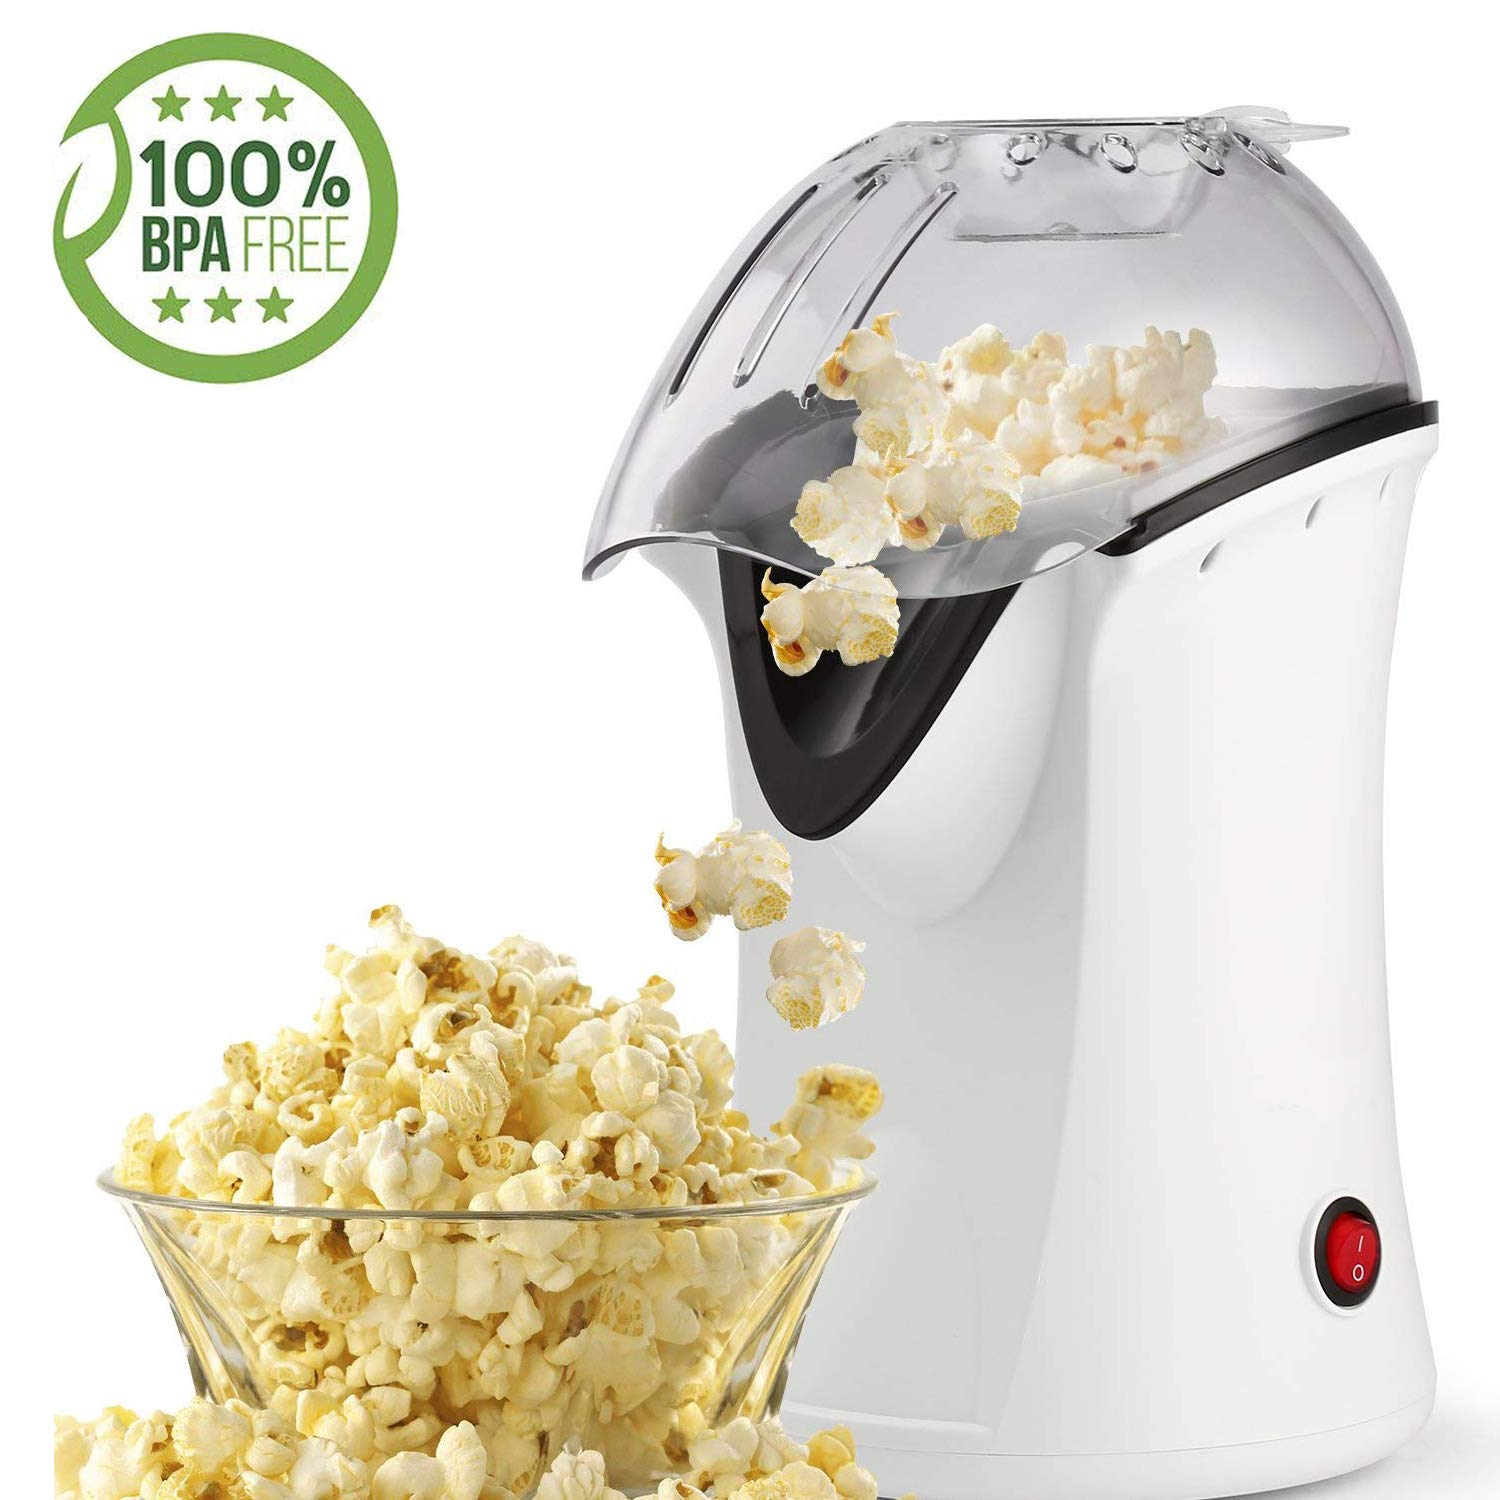 1200W Popcorn Machine Electric Machine Maker 4 Cups of Popcorn, Hot Air Popcorn Popper with Wide Mouth Design (US STOCK) (White)